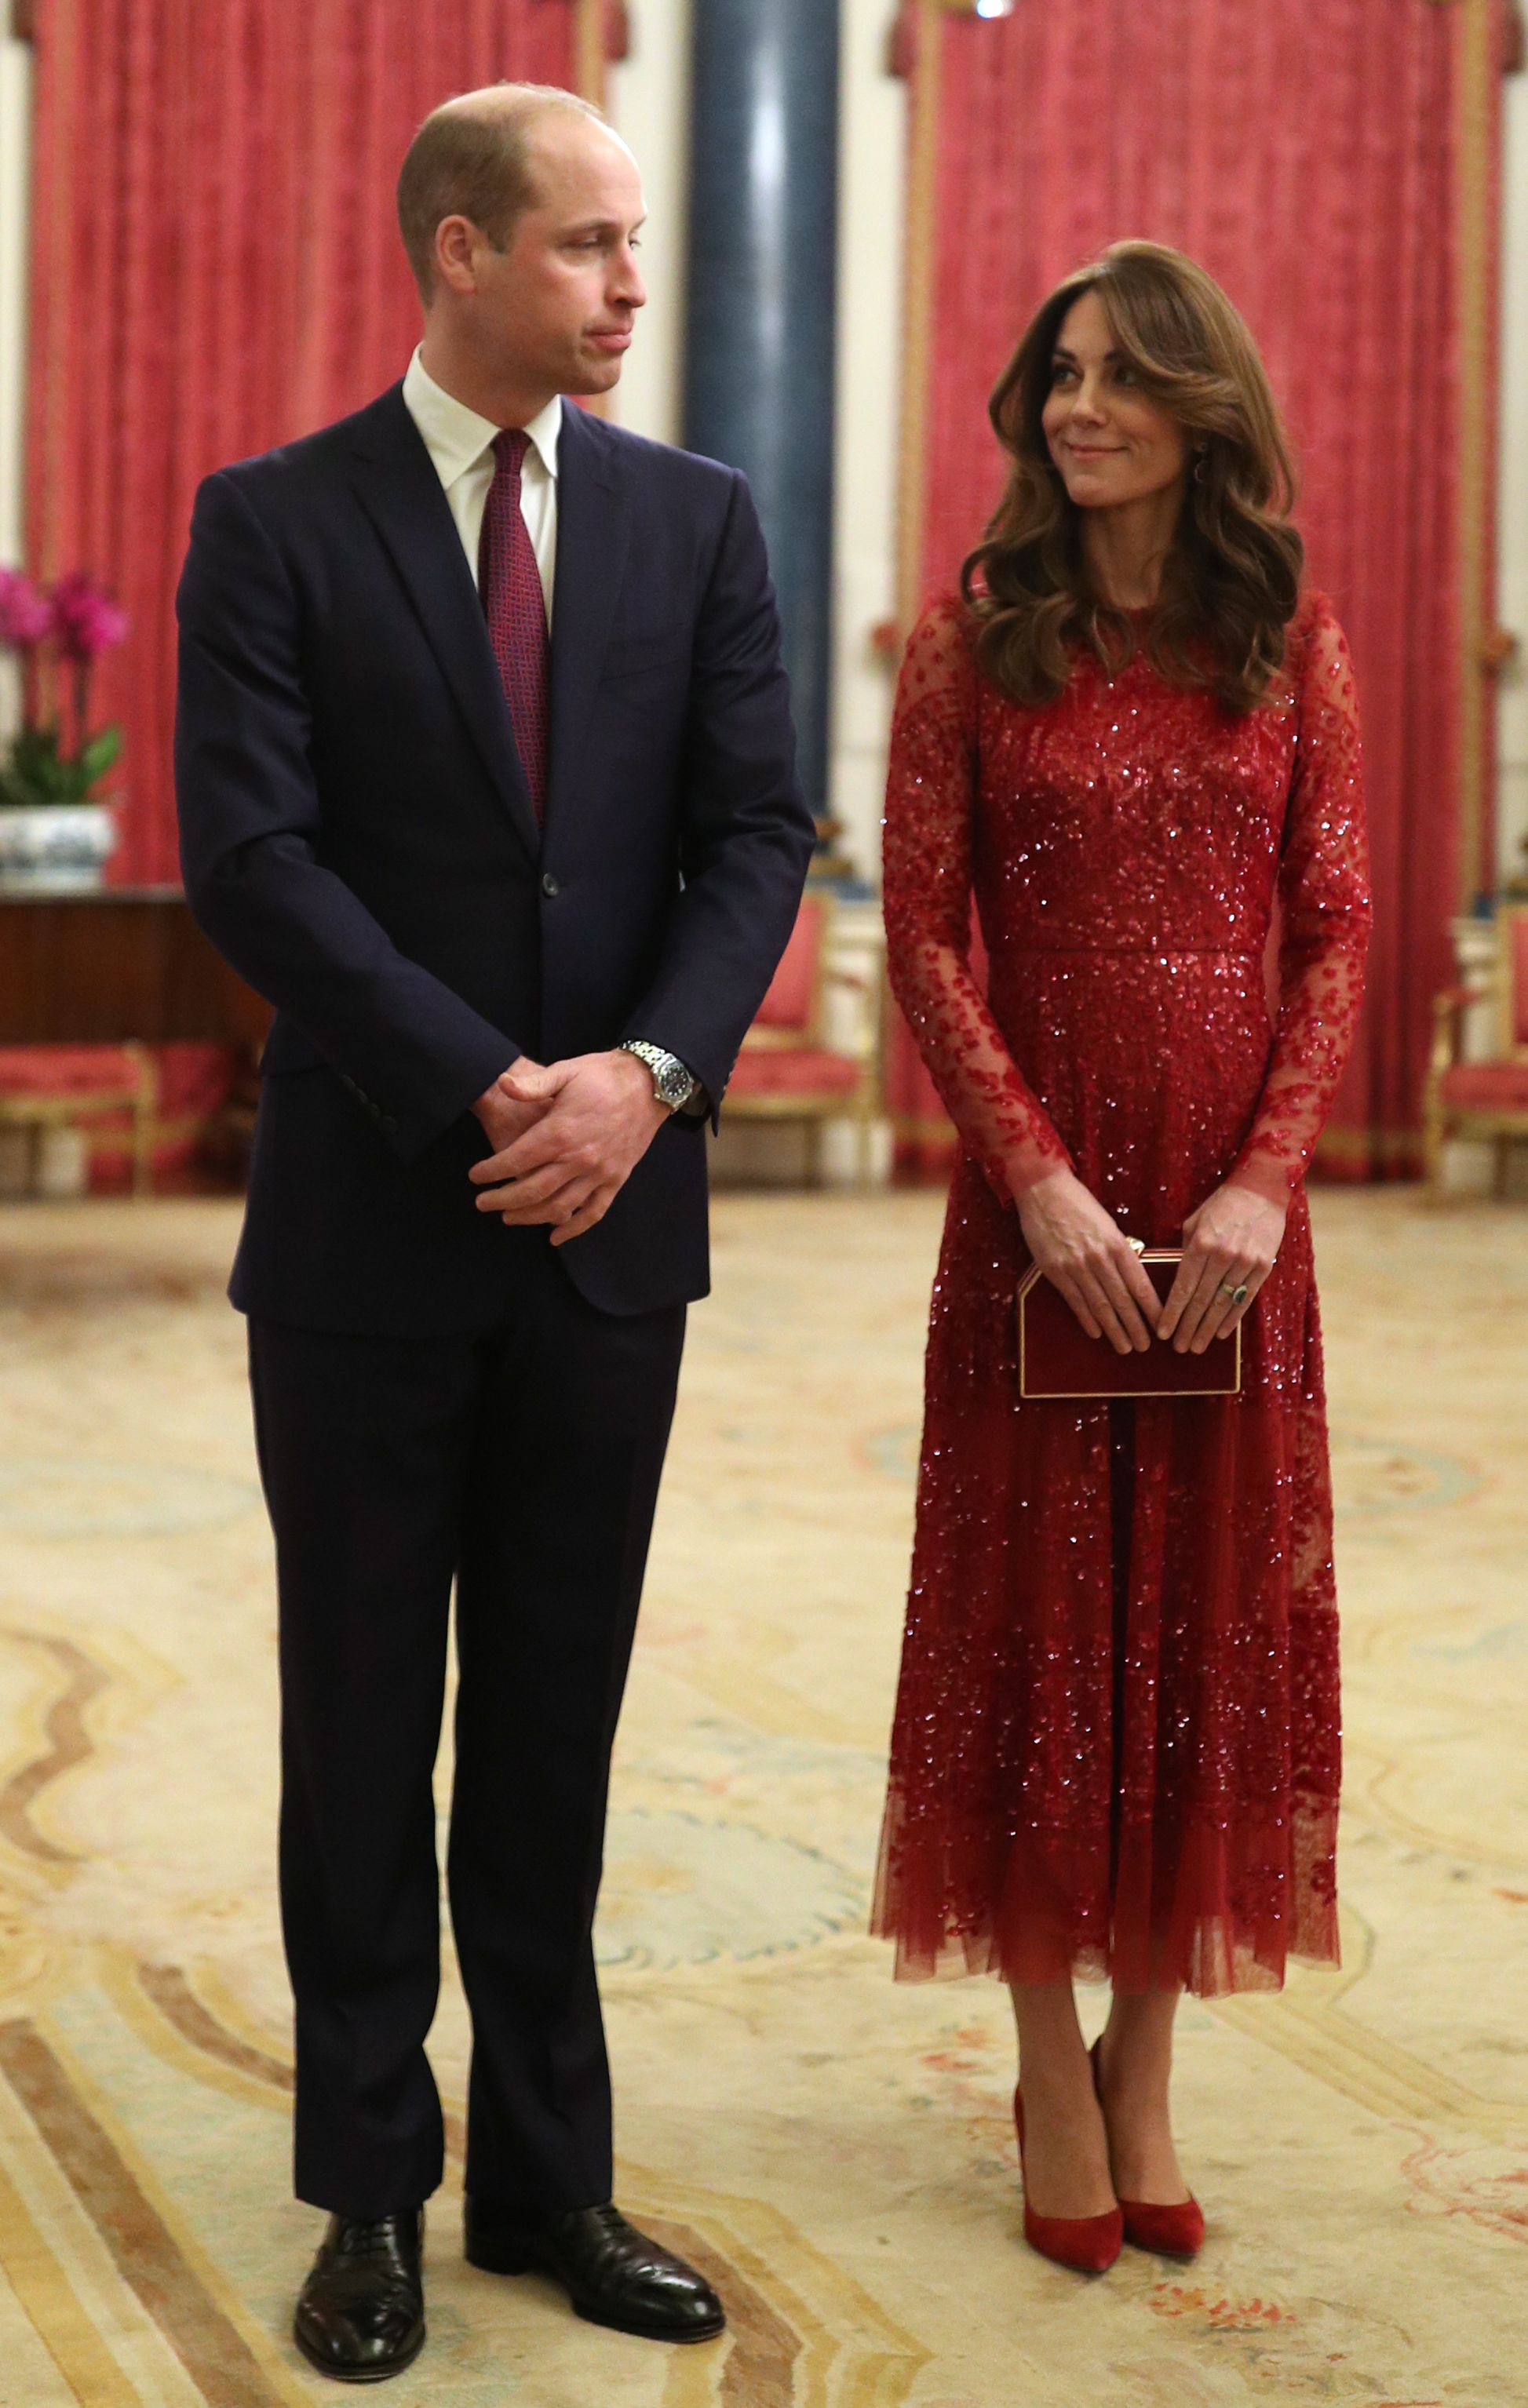 See Kate Middleton Pop Out in Red At Prince William's First Solo Buckingham Palace Reception